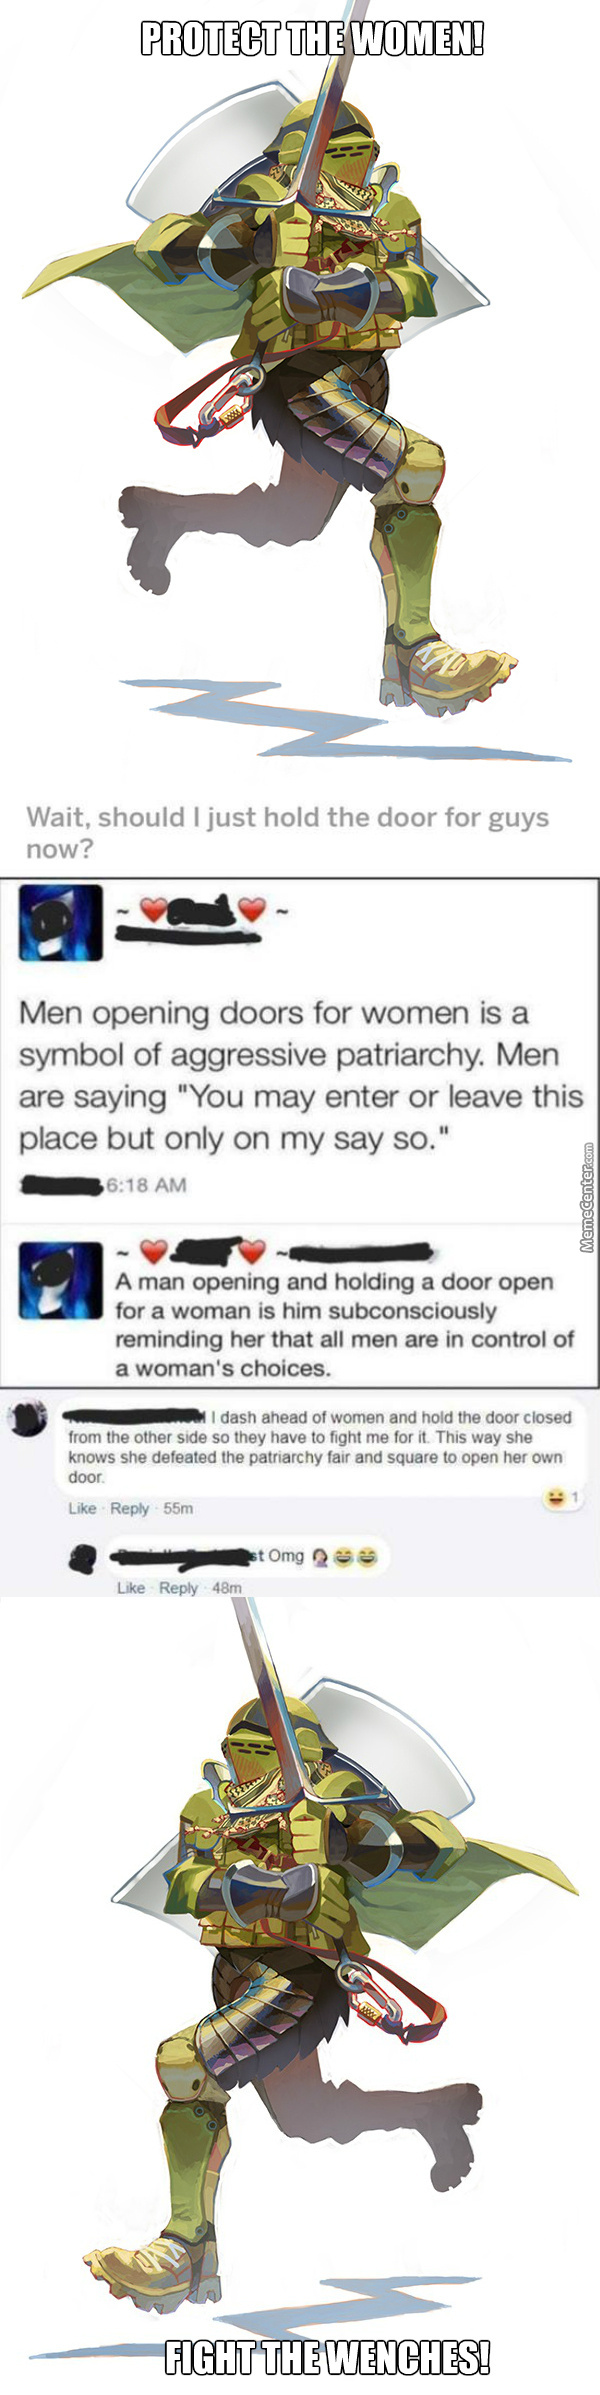 Omg U Just Cant Open The Door For A Girl, Your Raping Her U Pig